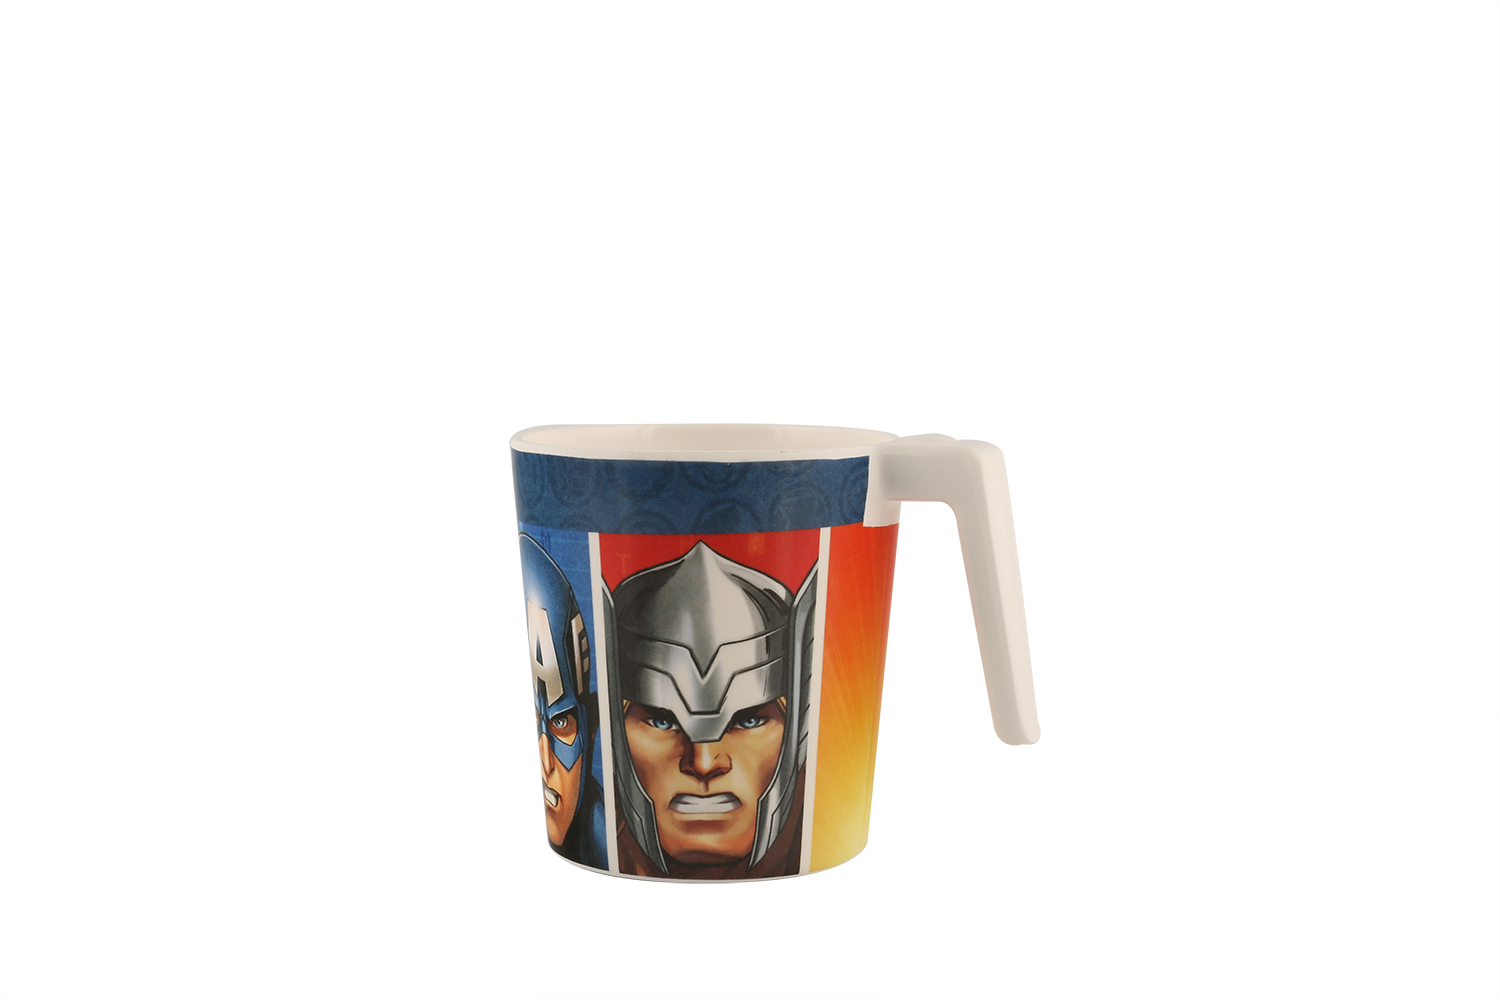 SW Mug Large Avengers Glasses & Tumblers in Multicolor Colour by Servewell